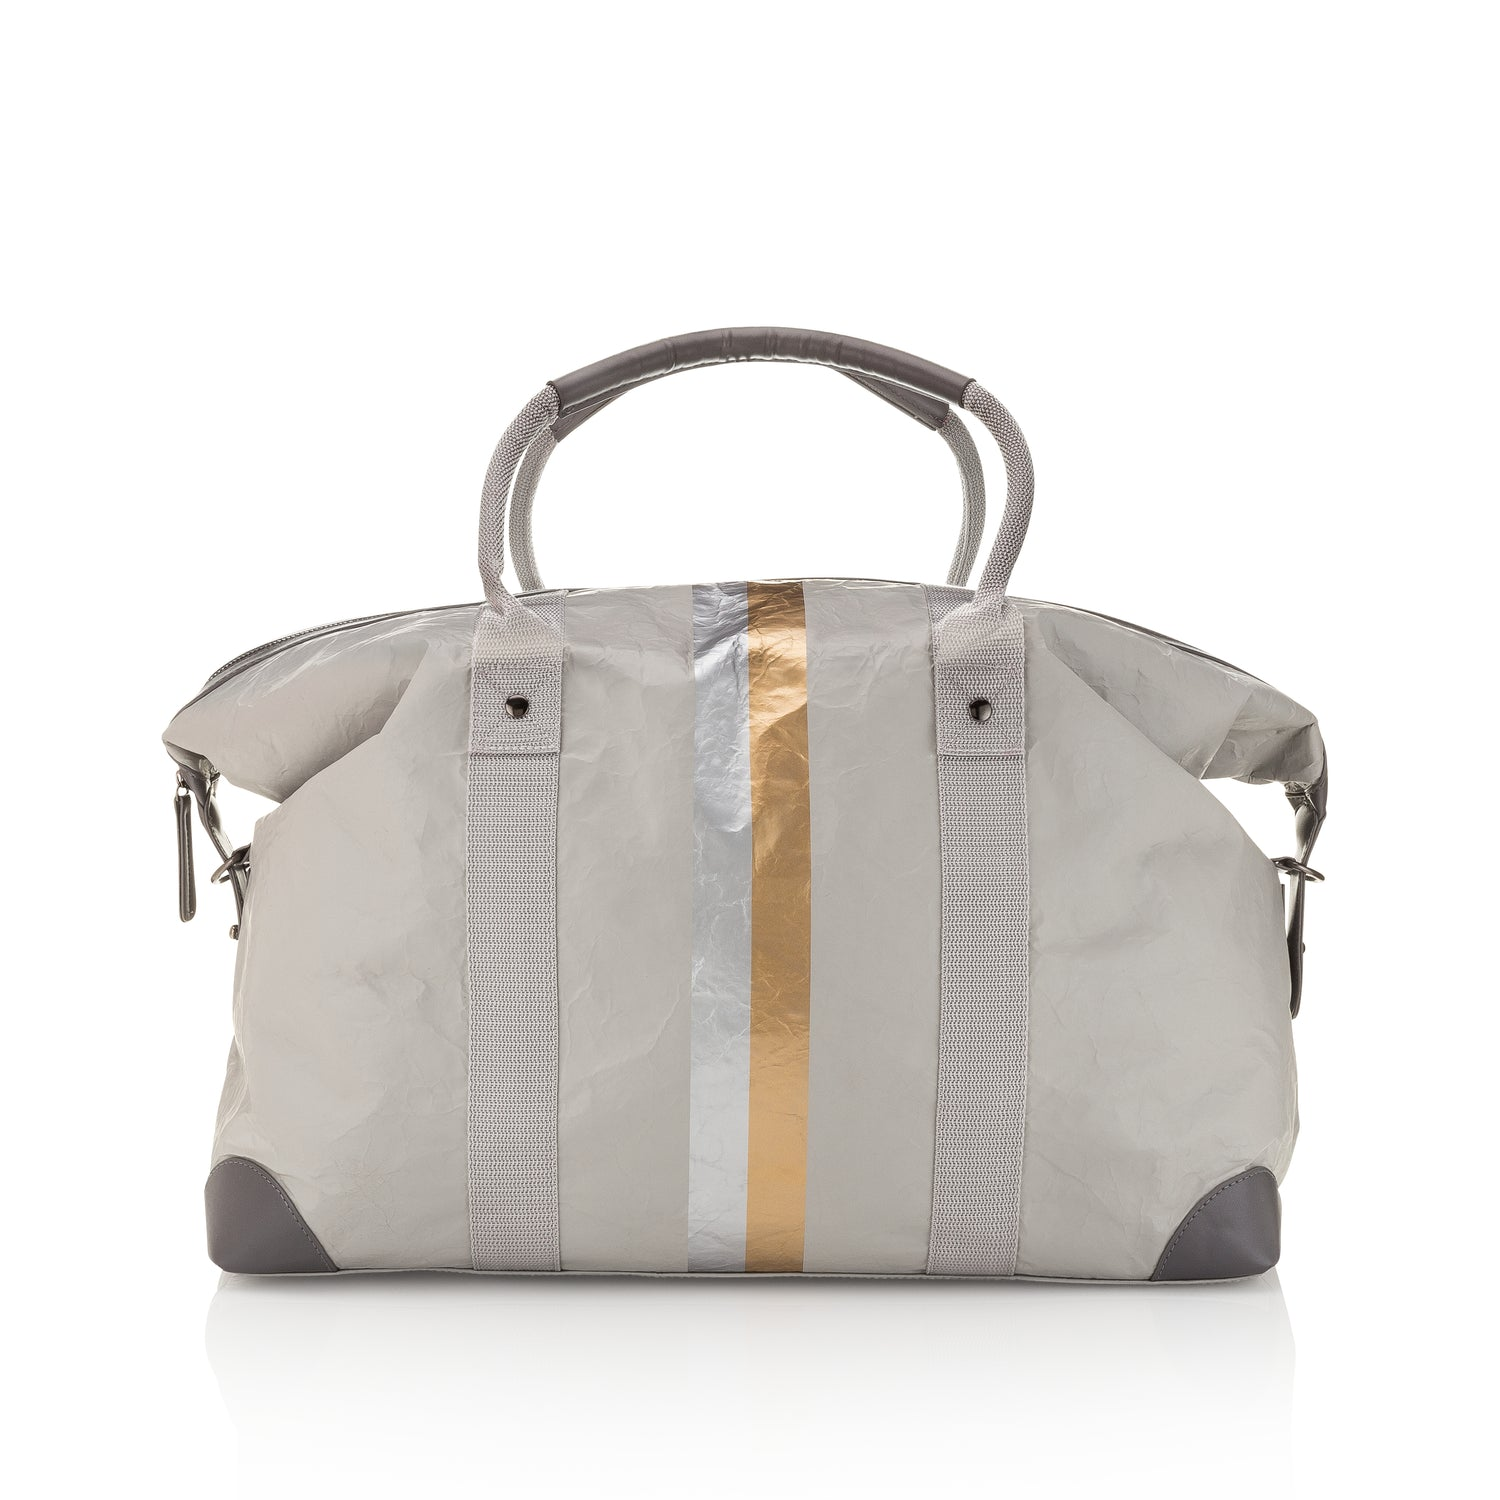 The Weekender Carry-On Travel Luggage Bag - Gray